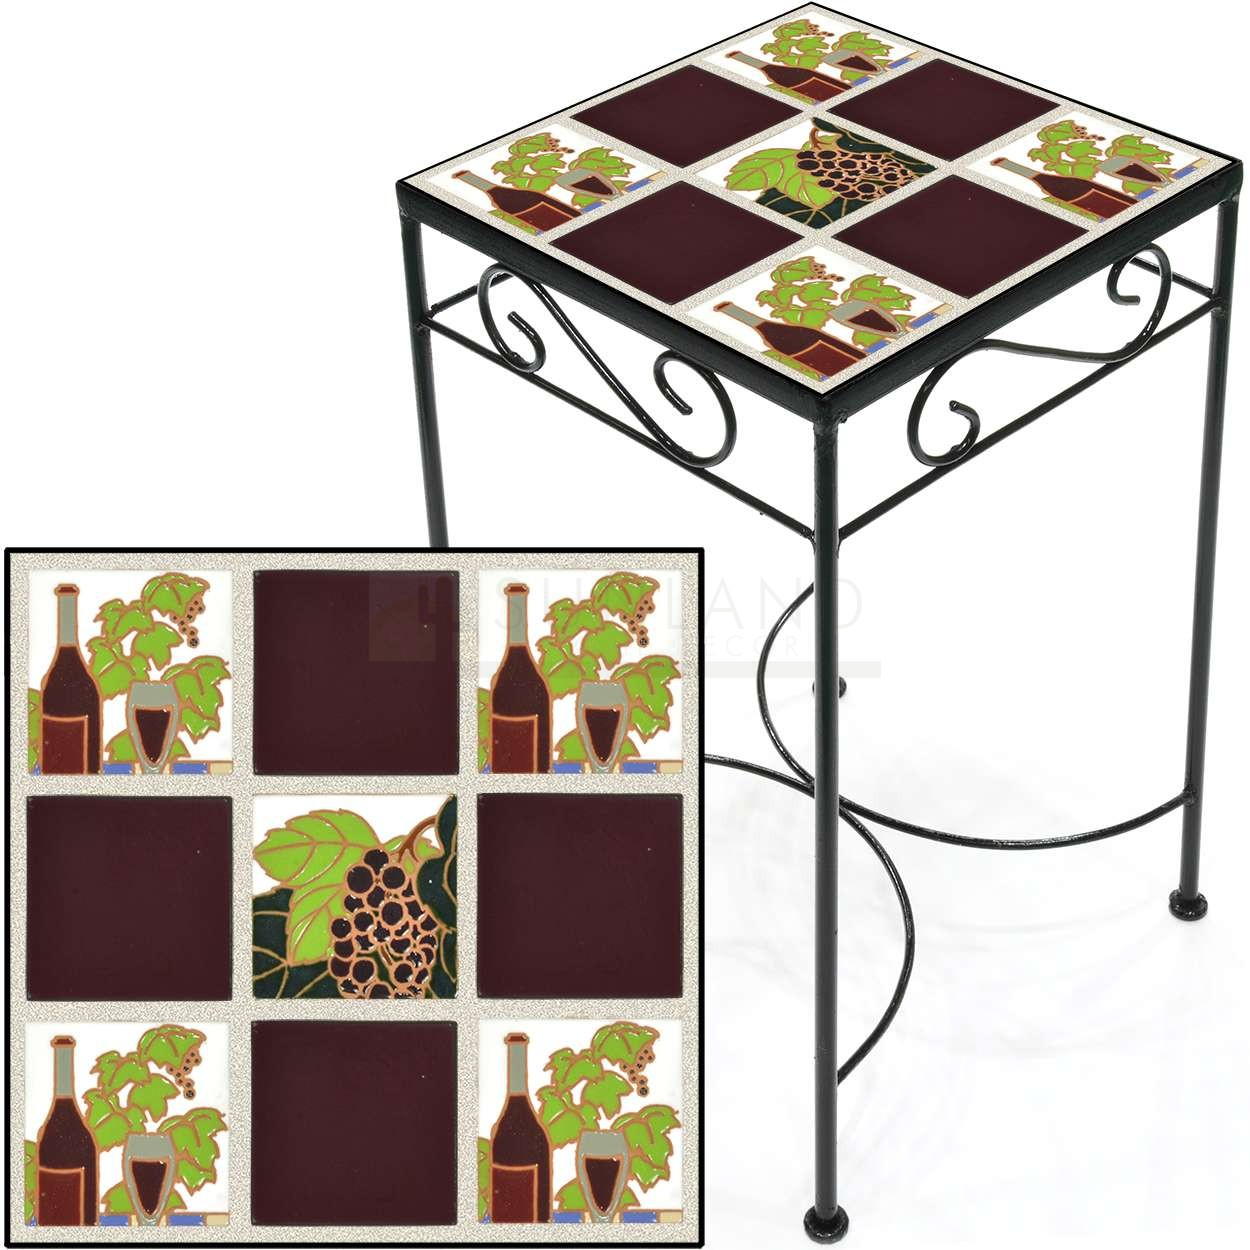 tile accent table wine and grapes burgundy tall square more views metal hampton bay pembrey uttermost gin cube pier imports patio furniture outdoor sets inn marble contact paper